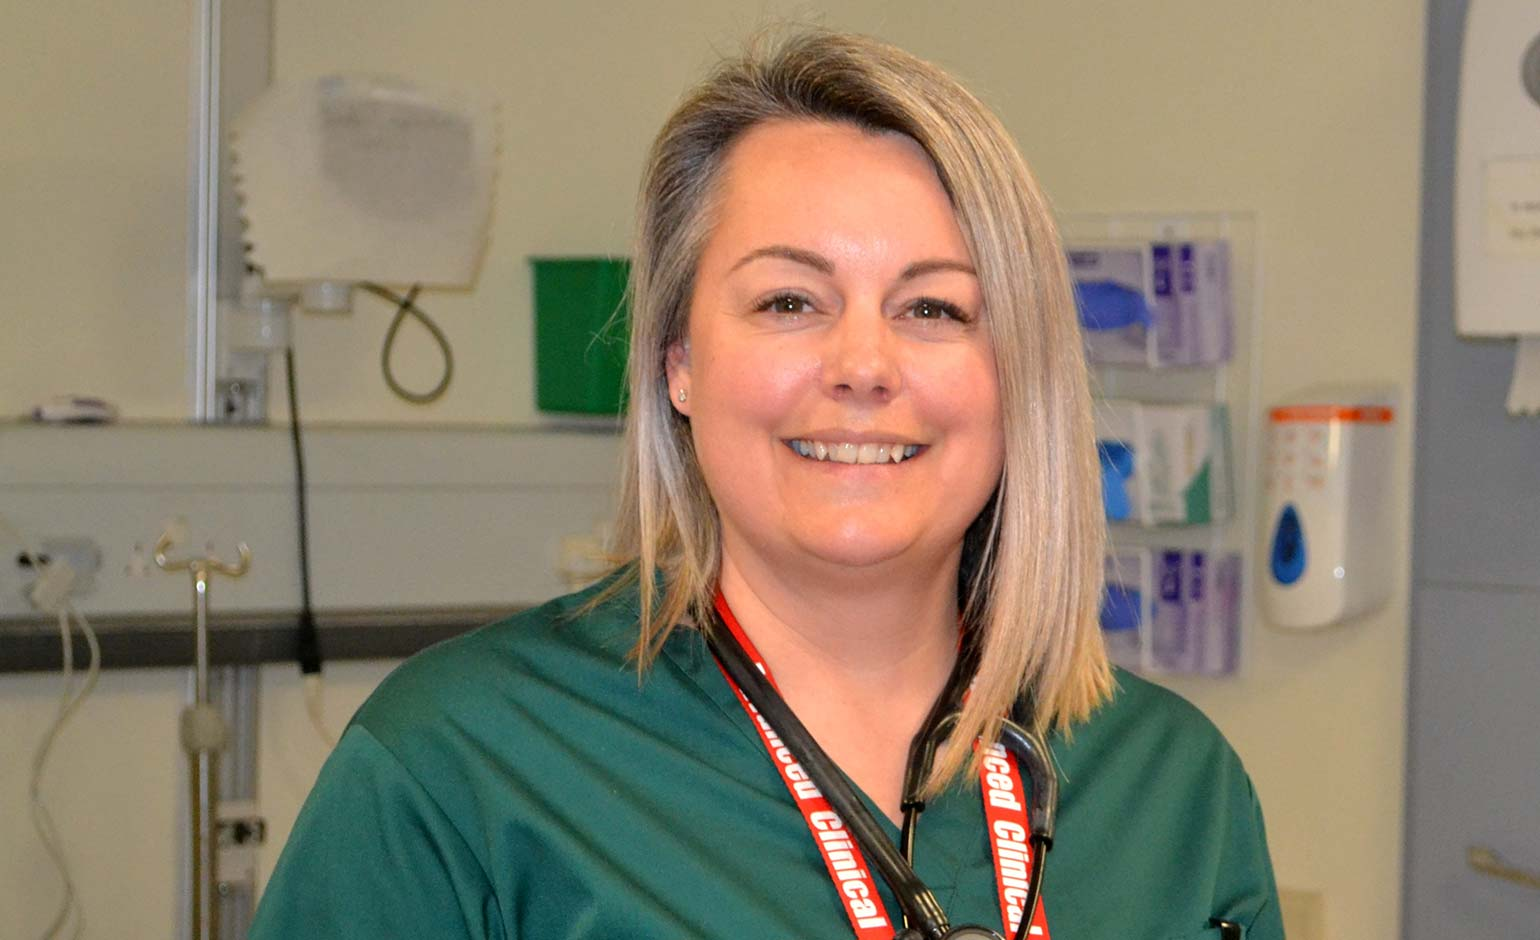 RUH nurse honoured for saving motorcyclist's life following serious collision